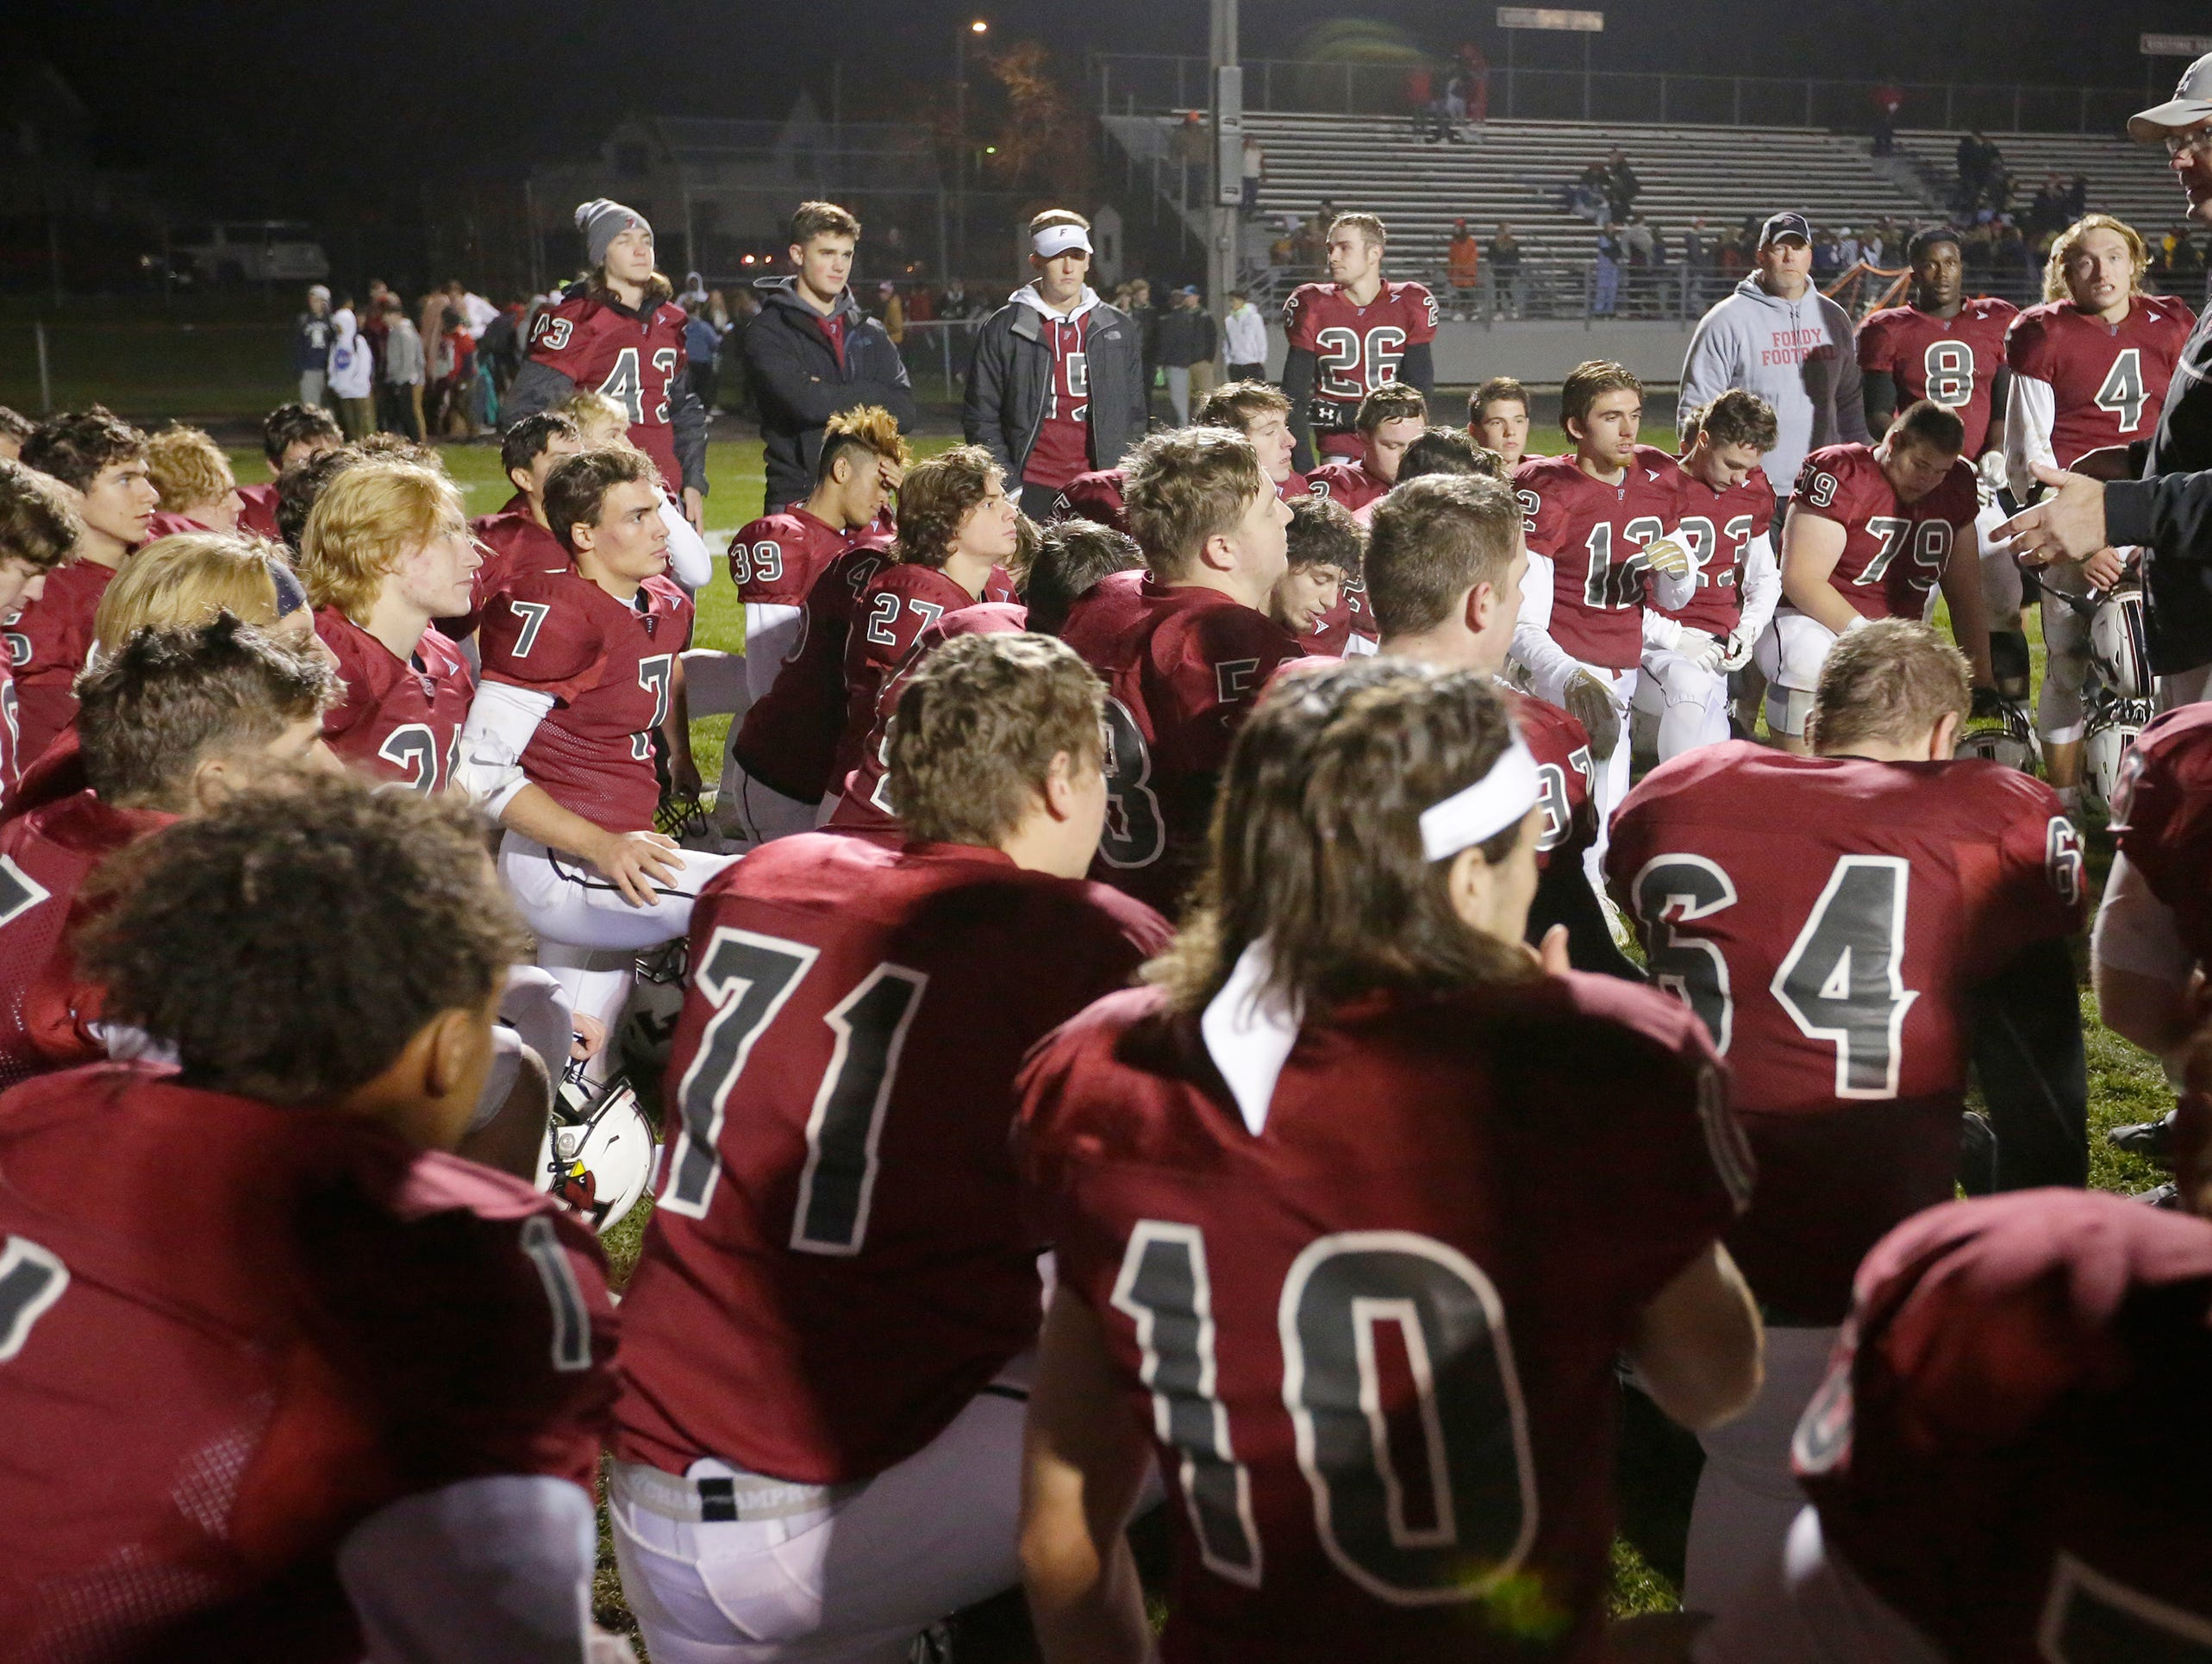 Fond du Lac's head coach Steve Jorgensen talks wi the team after they defeated Arrowhead 28 - 22.  Fond du Lac Cardinals played Arrowhead Warhawks in WIAA football playoff sectionals, Friday, Oct. 26, 2018, at Fruth Field in Fond du Lac.Joe Sienkiewicz/USA Today NETWORK-Wisconsin